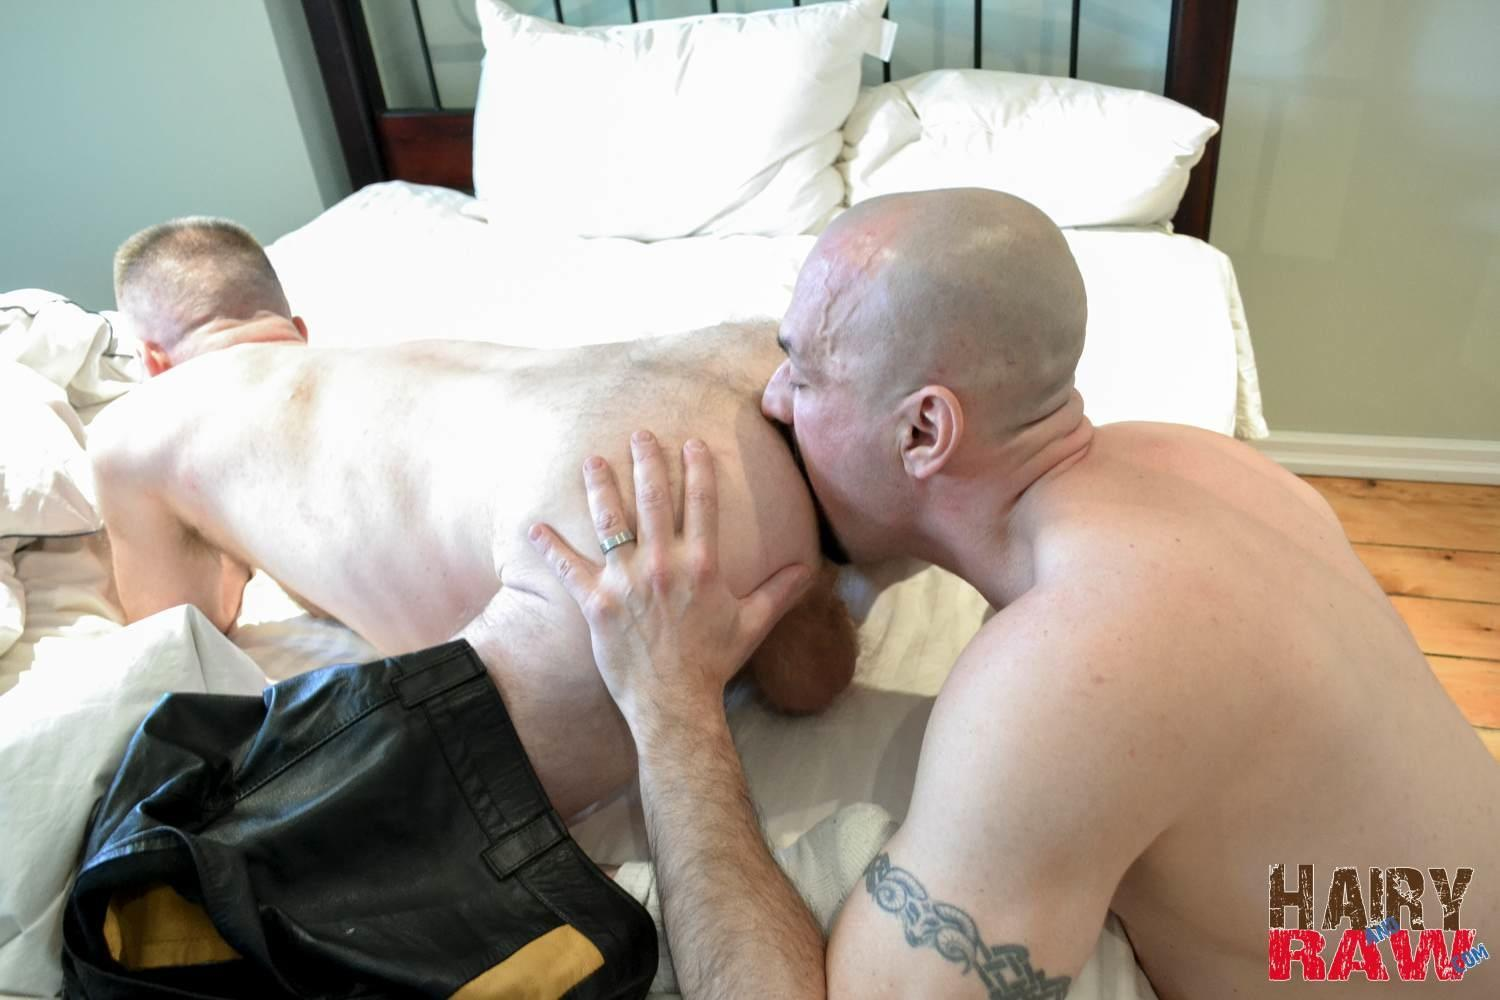 Hairy and Raw Troy Collins and CanaDad Masculine Hairy Daddies Fucking Bareback Amateur Gay Porn 11 Hairy Masucline Daddies Flip Flop Fucking Bareback